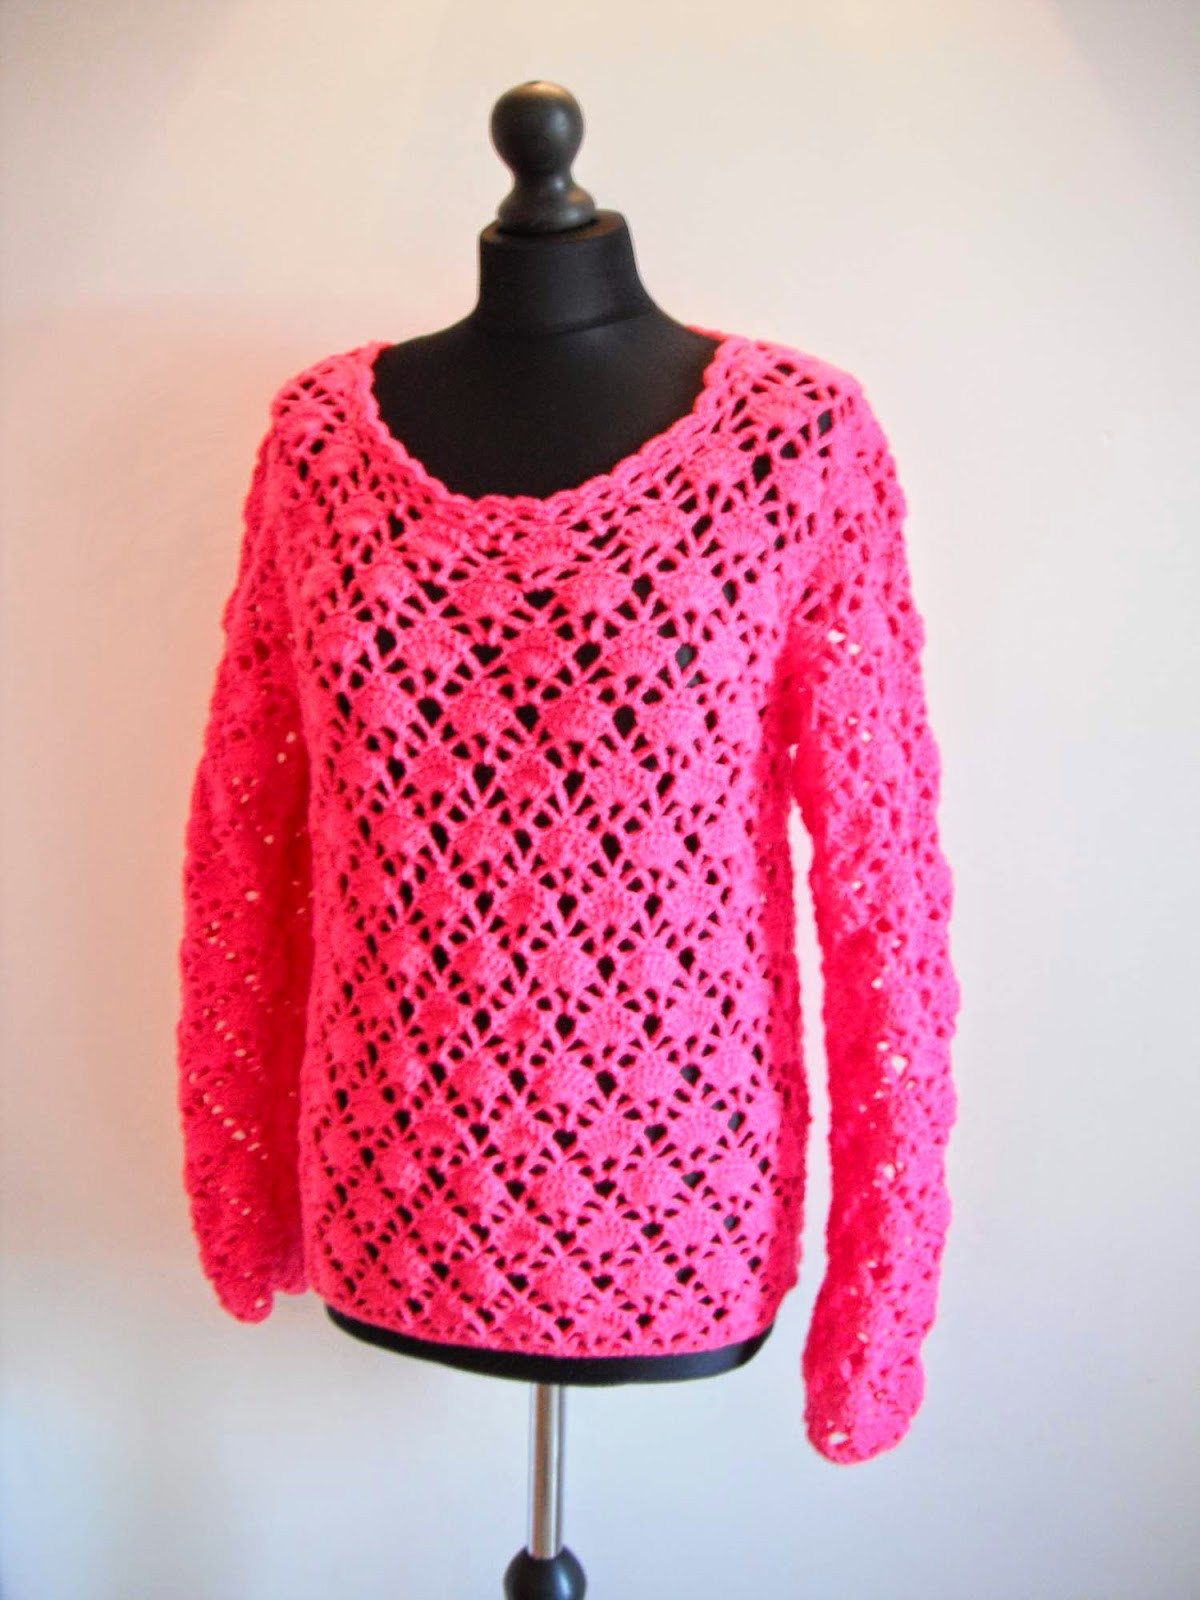 Best Of Free Crochet Patterns and Video Tutorials How to Crochet Crochet Pullover Of Top 47 Images Crochet Pullover